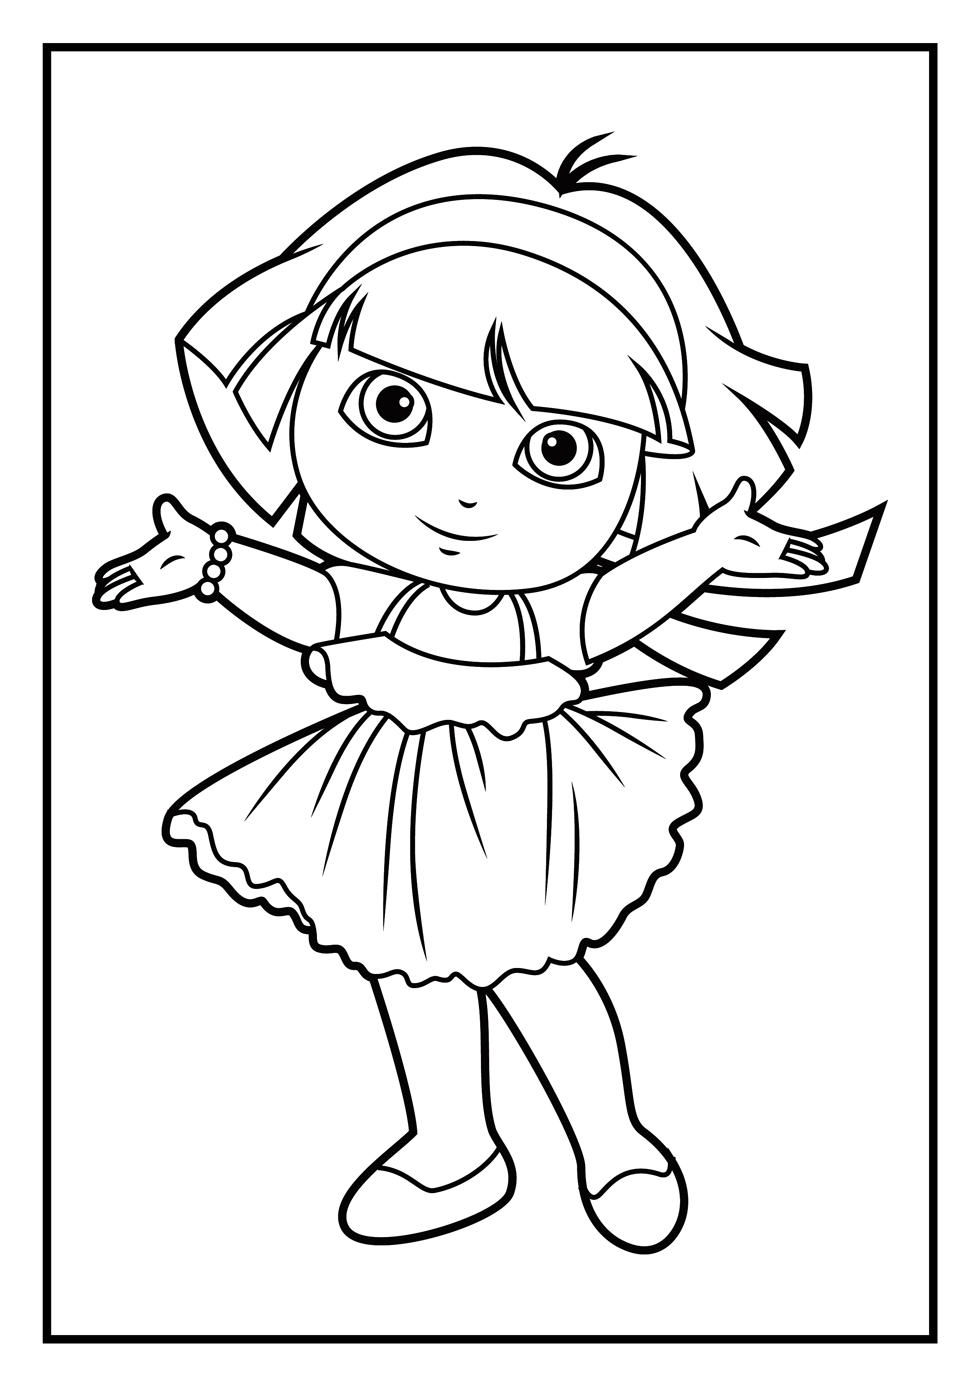 dora colouring dora coloring pages diego coloring pages dora colouring